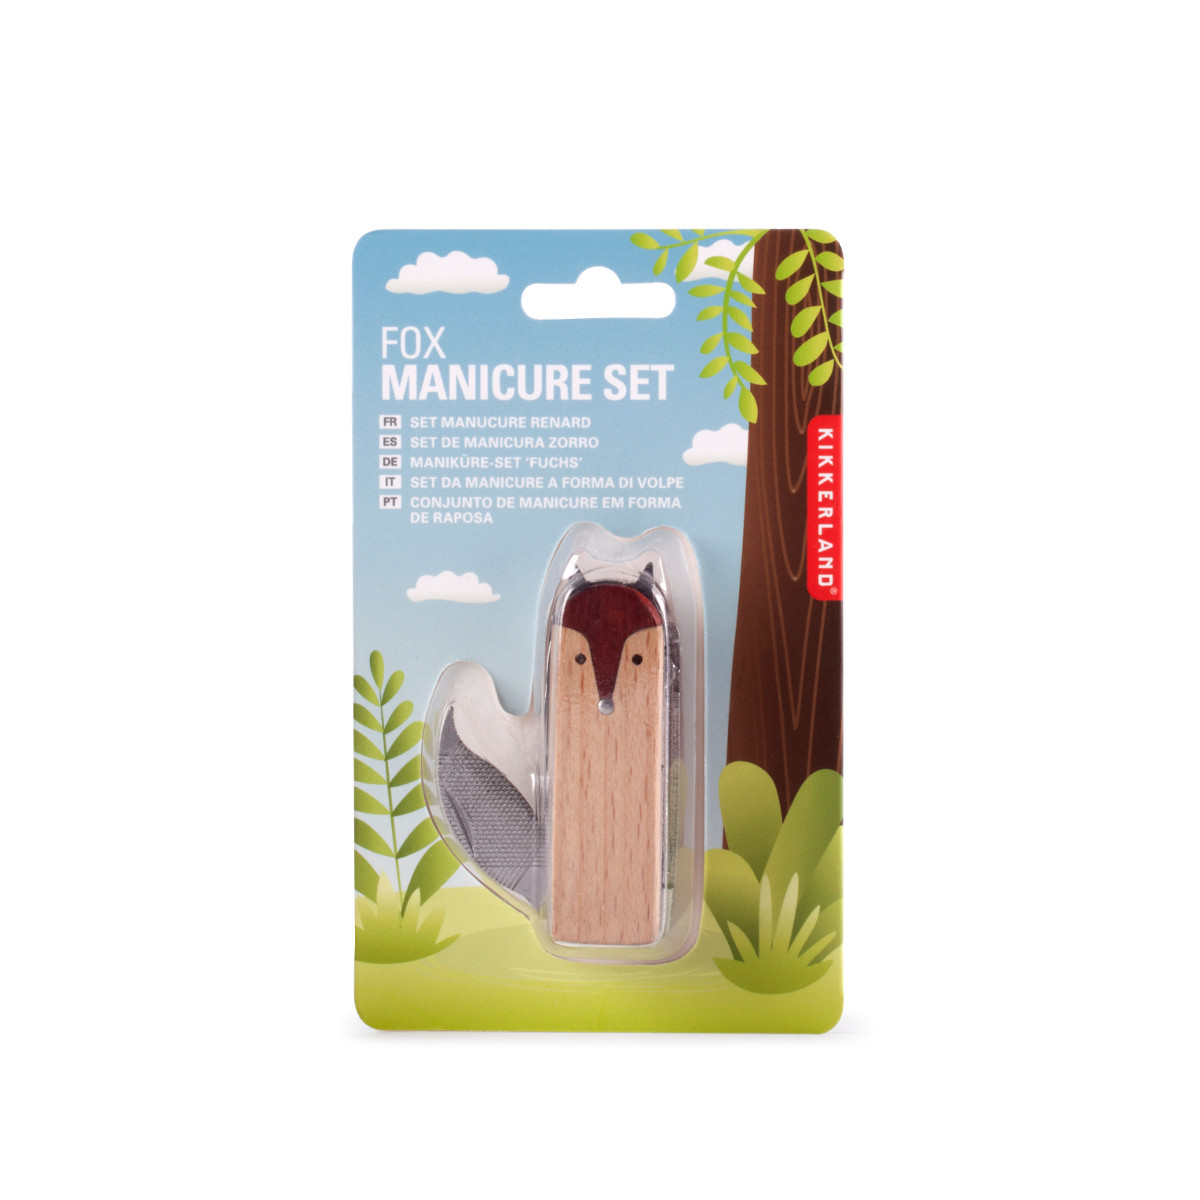 Fox Manicure Set - Verpackung